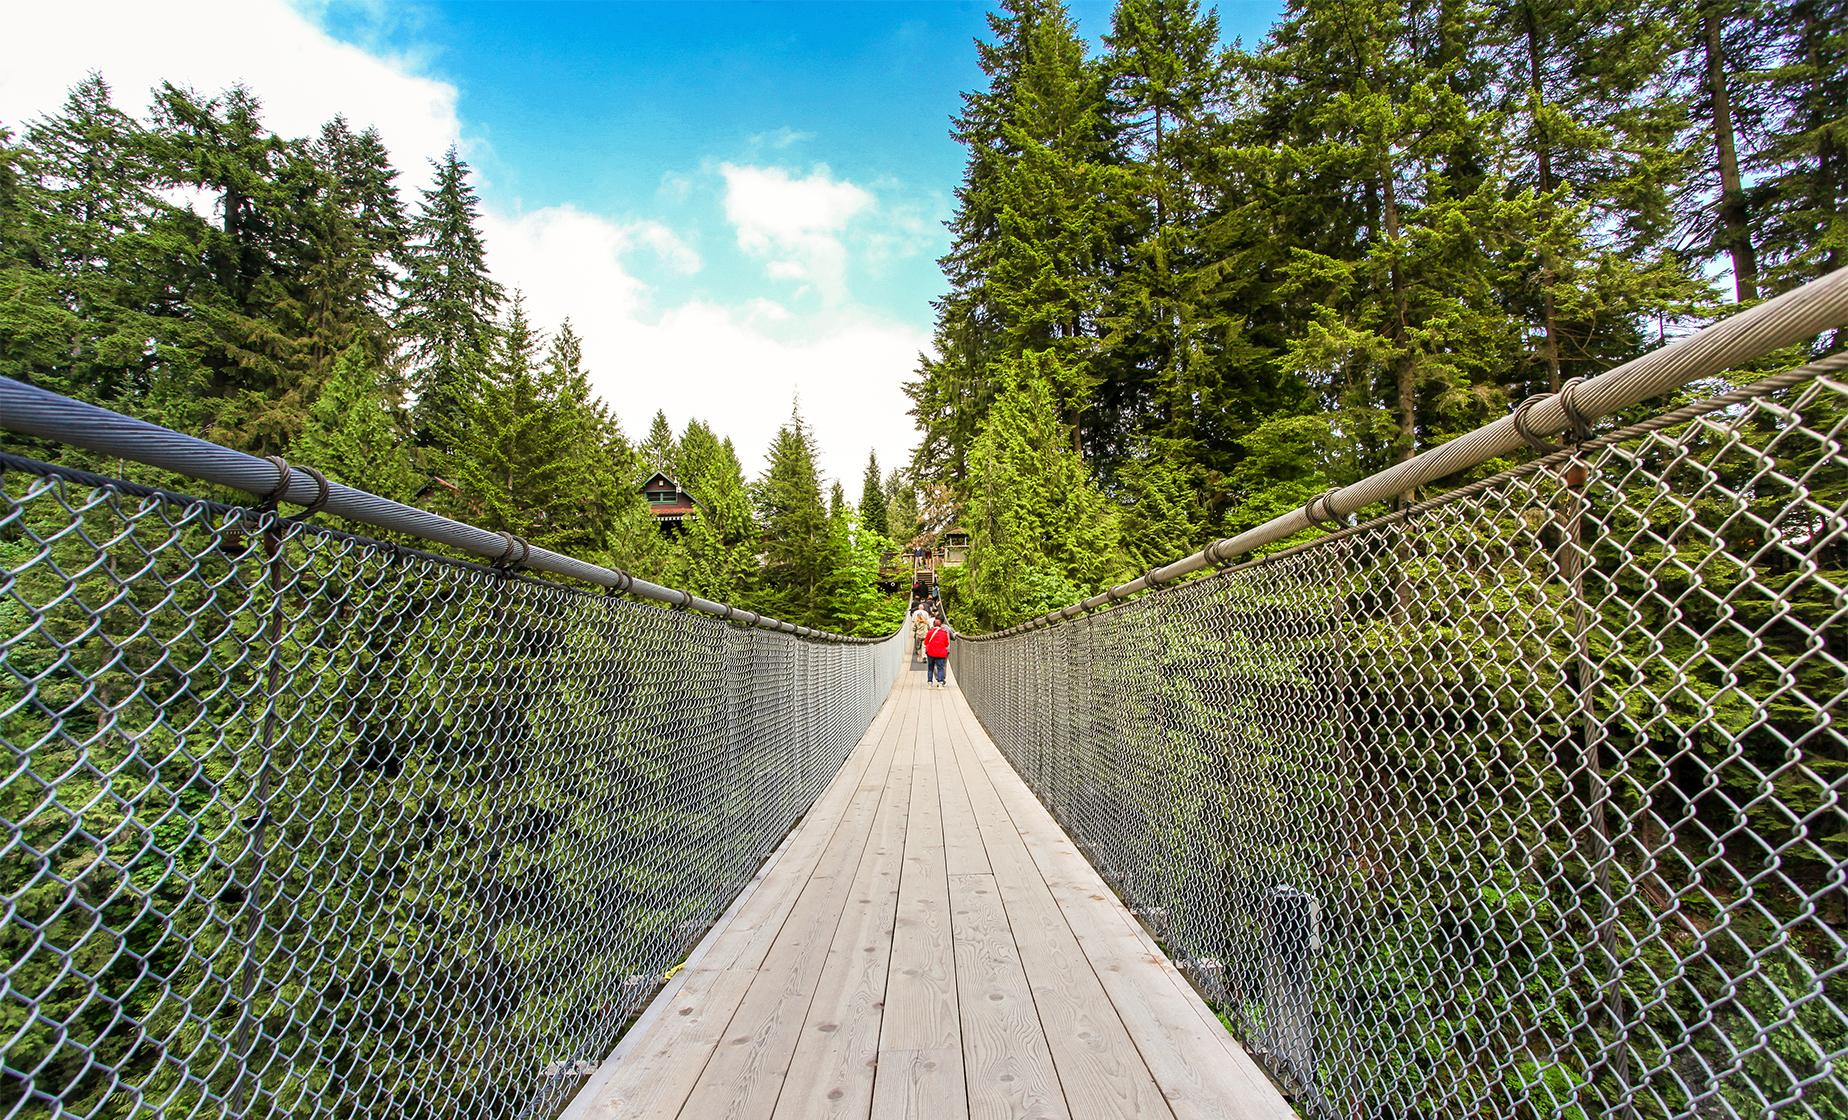 North Shore Capilano & Grouse Mountain Tour in Vancouver